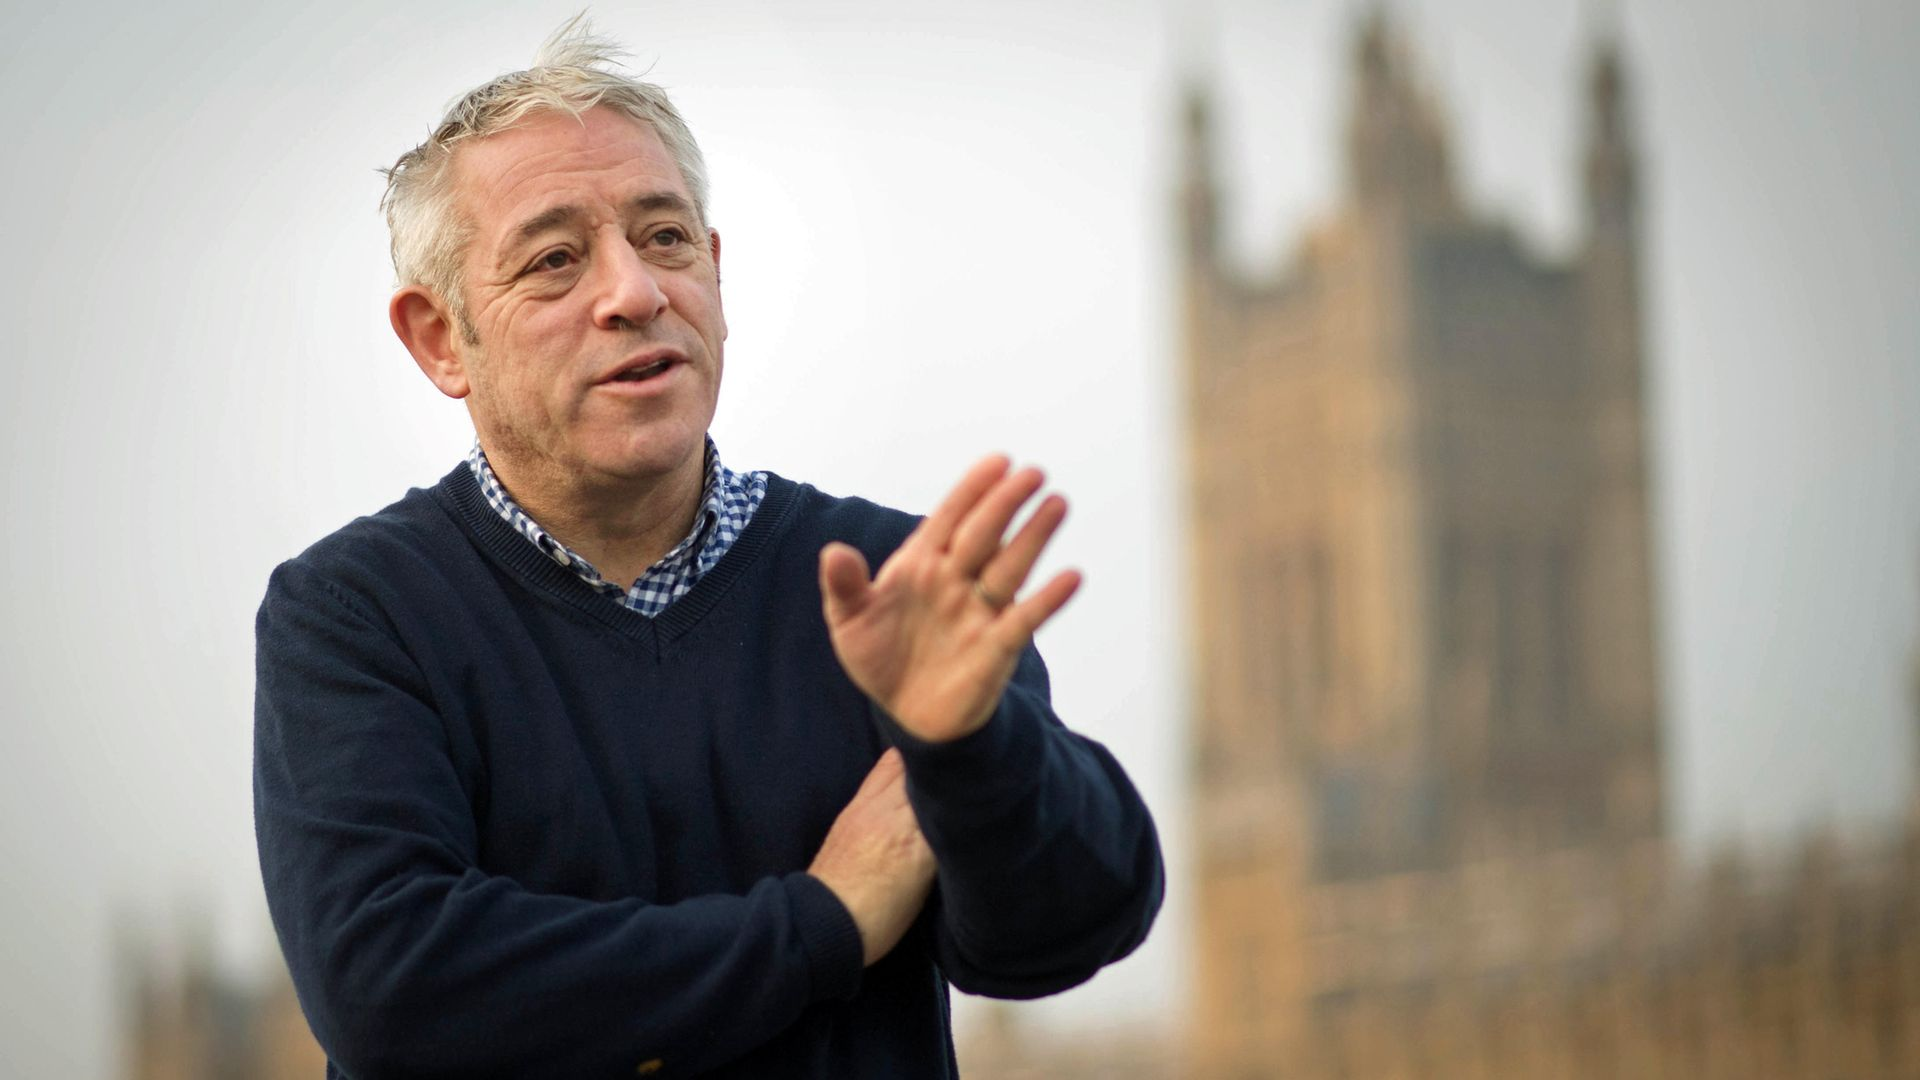 John Bercow said he could list ' a number of examples' of Boris Johnson being untruthful to parliament - Credit: PA